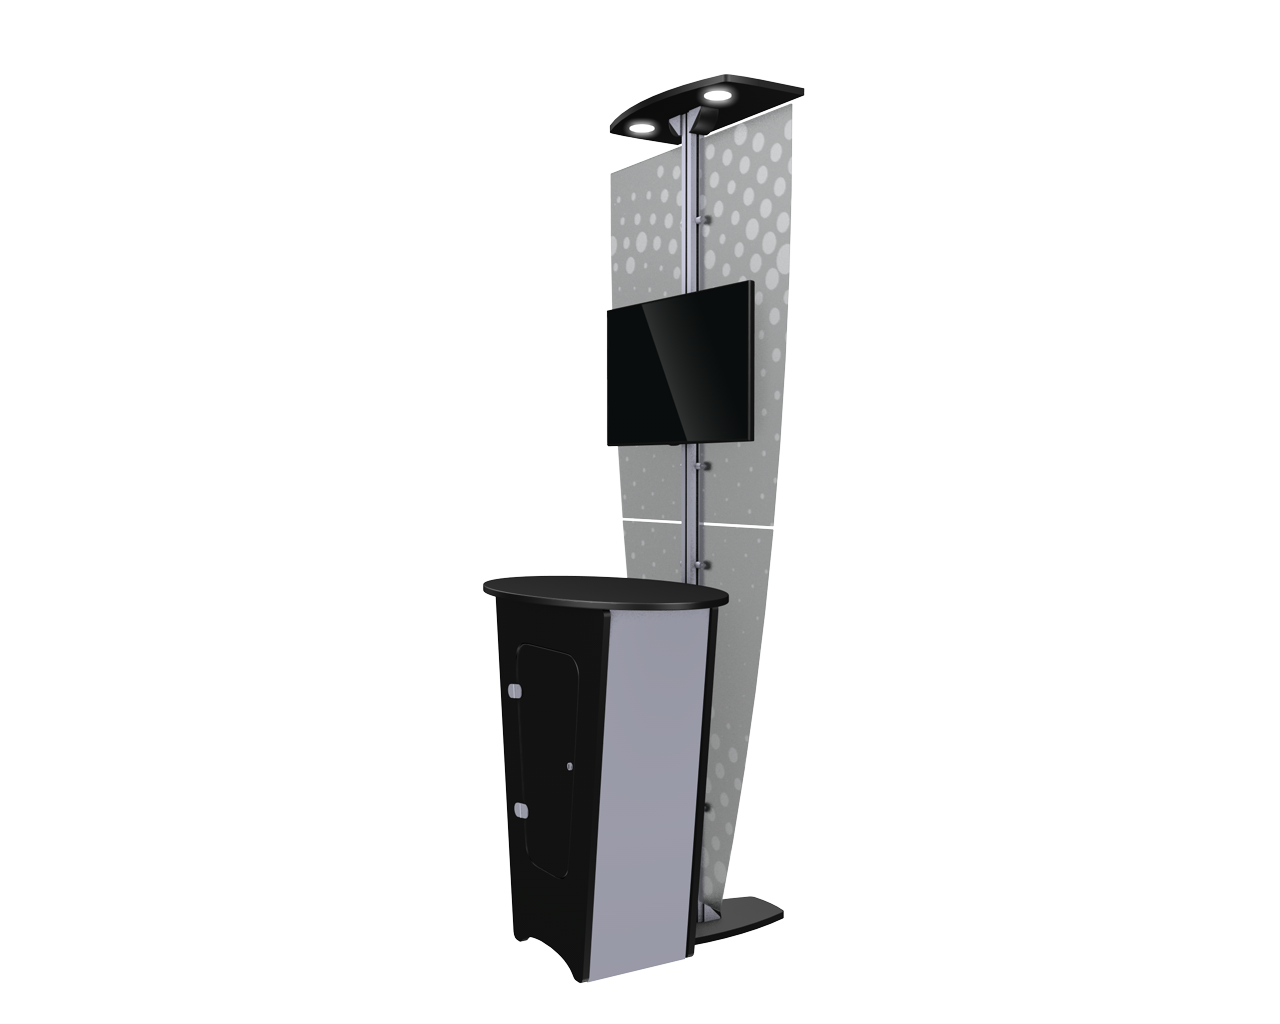 Exhibitline K2.NLC1 Locking Kiosk